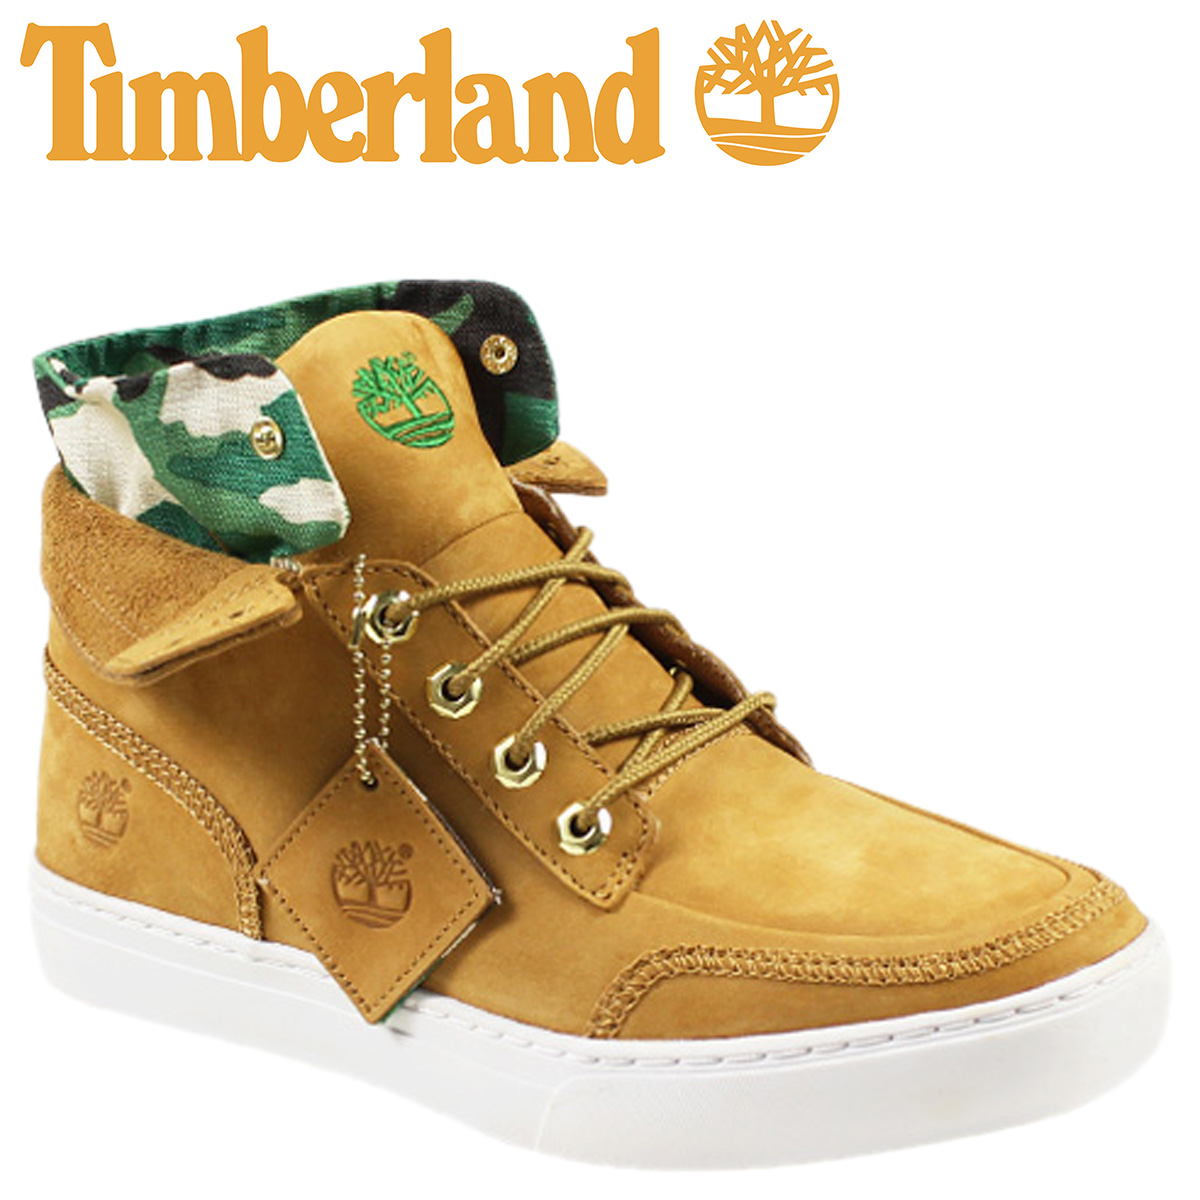 ALLSPORTS  Rakuten Global Market Point 2 x Timberland Timberland  Earthkeepers merge roll top boots EK MERGE ROLLTOP nubuck 6134A wheat